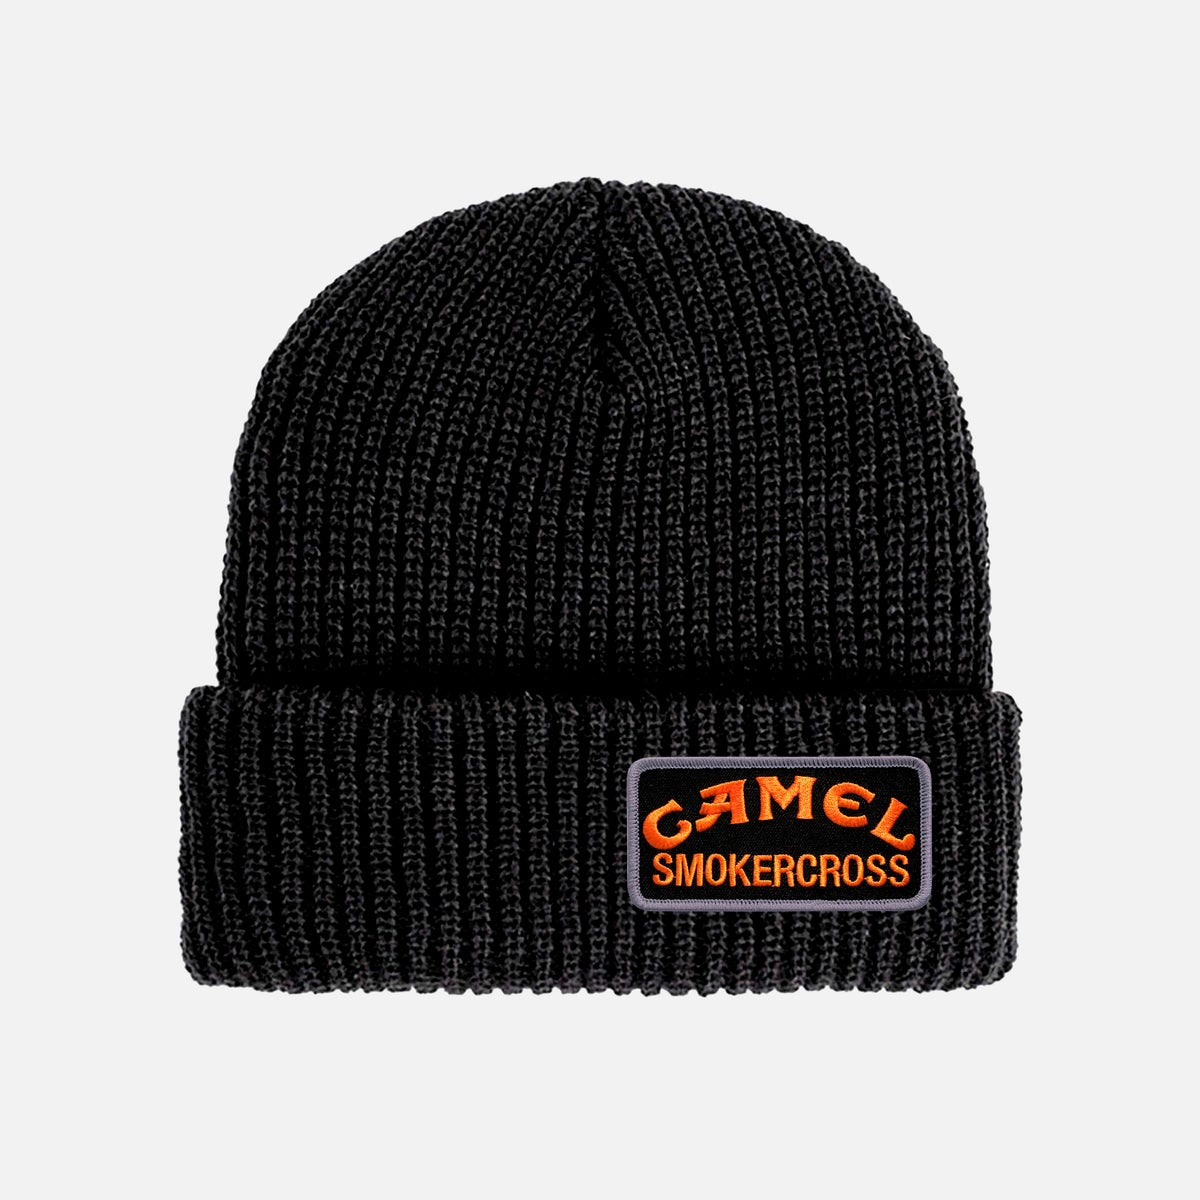 Image of CAMEL SMOKERCROSS PATCH BEANIE